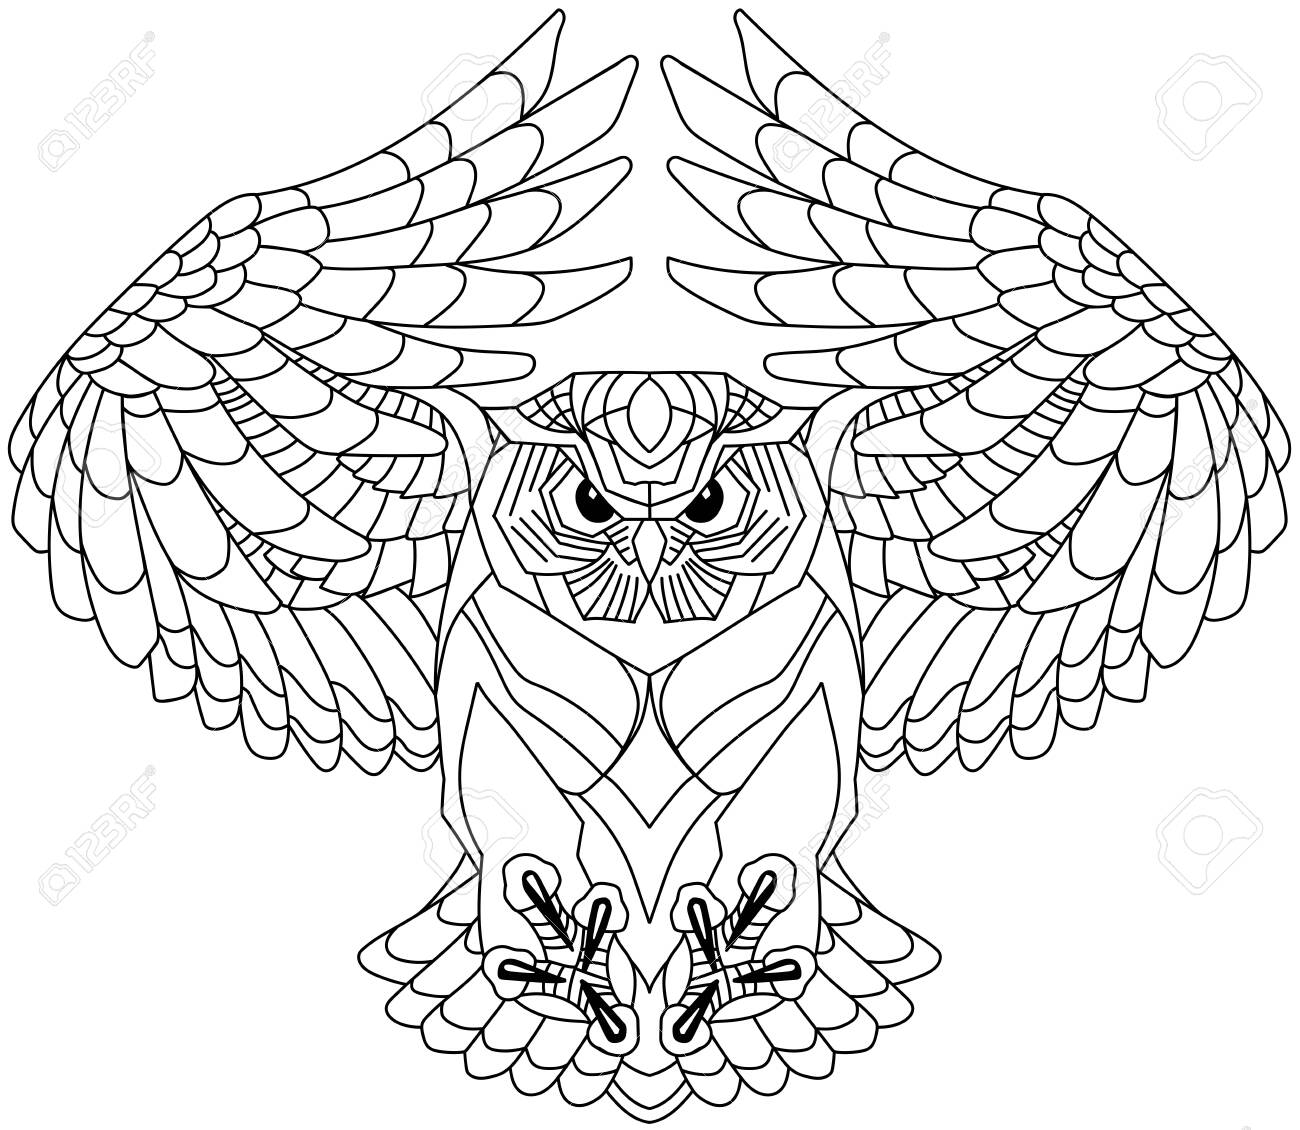 flying owl with open wings looking deep with a sharp gaze. Black and white outline tattoo. Front view vector illustration - 139486139